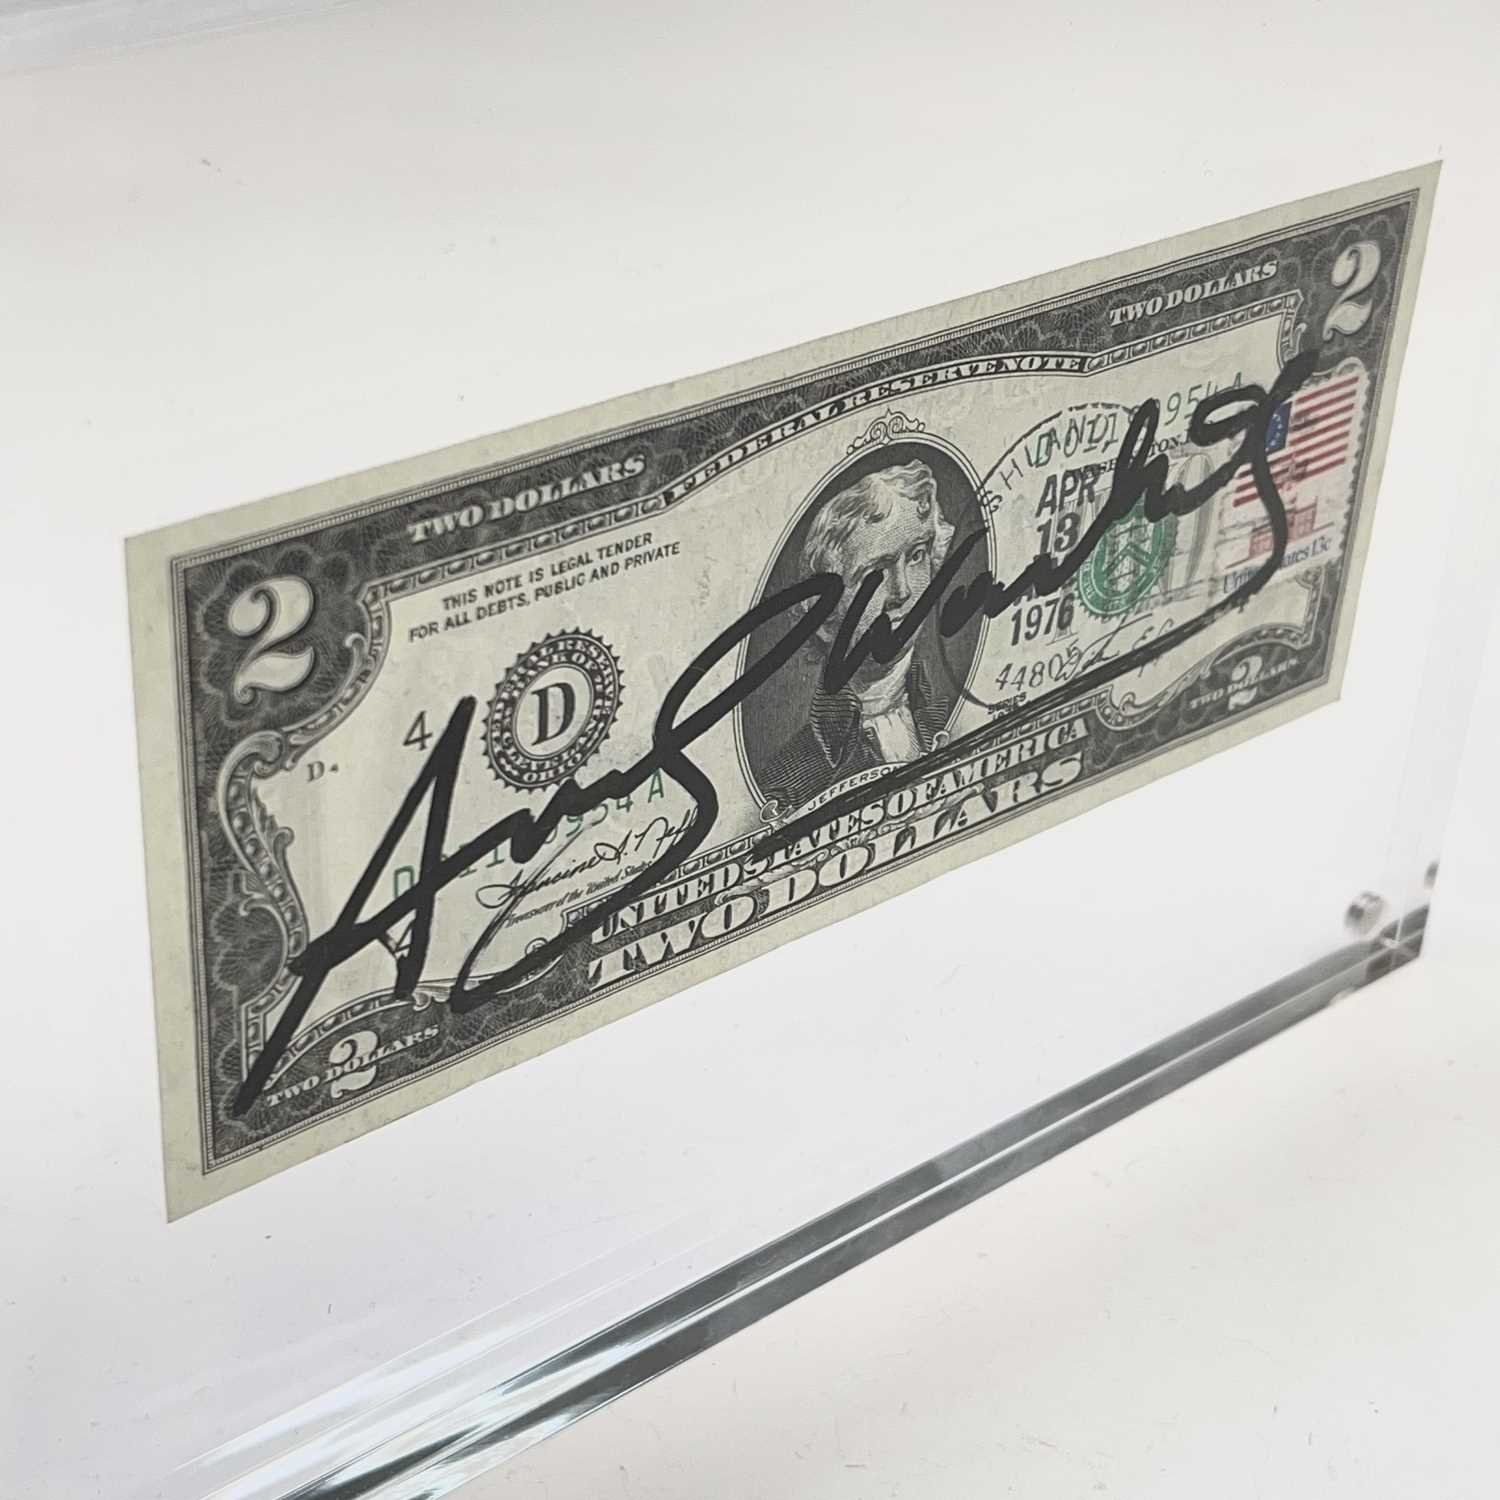 After Andy Warhol, a two-dollar banknote, bears signature, together with accompanying paperwork. - Image 4 of 14